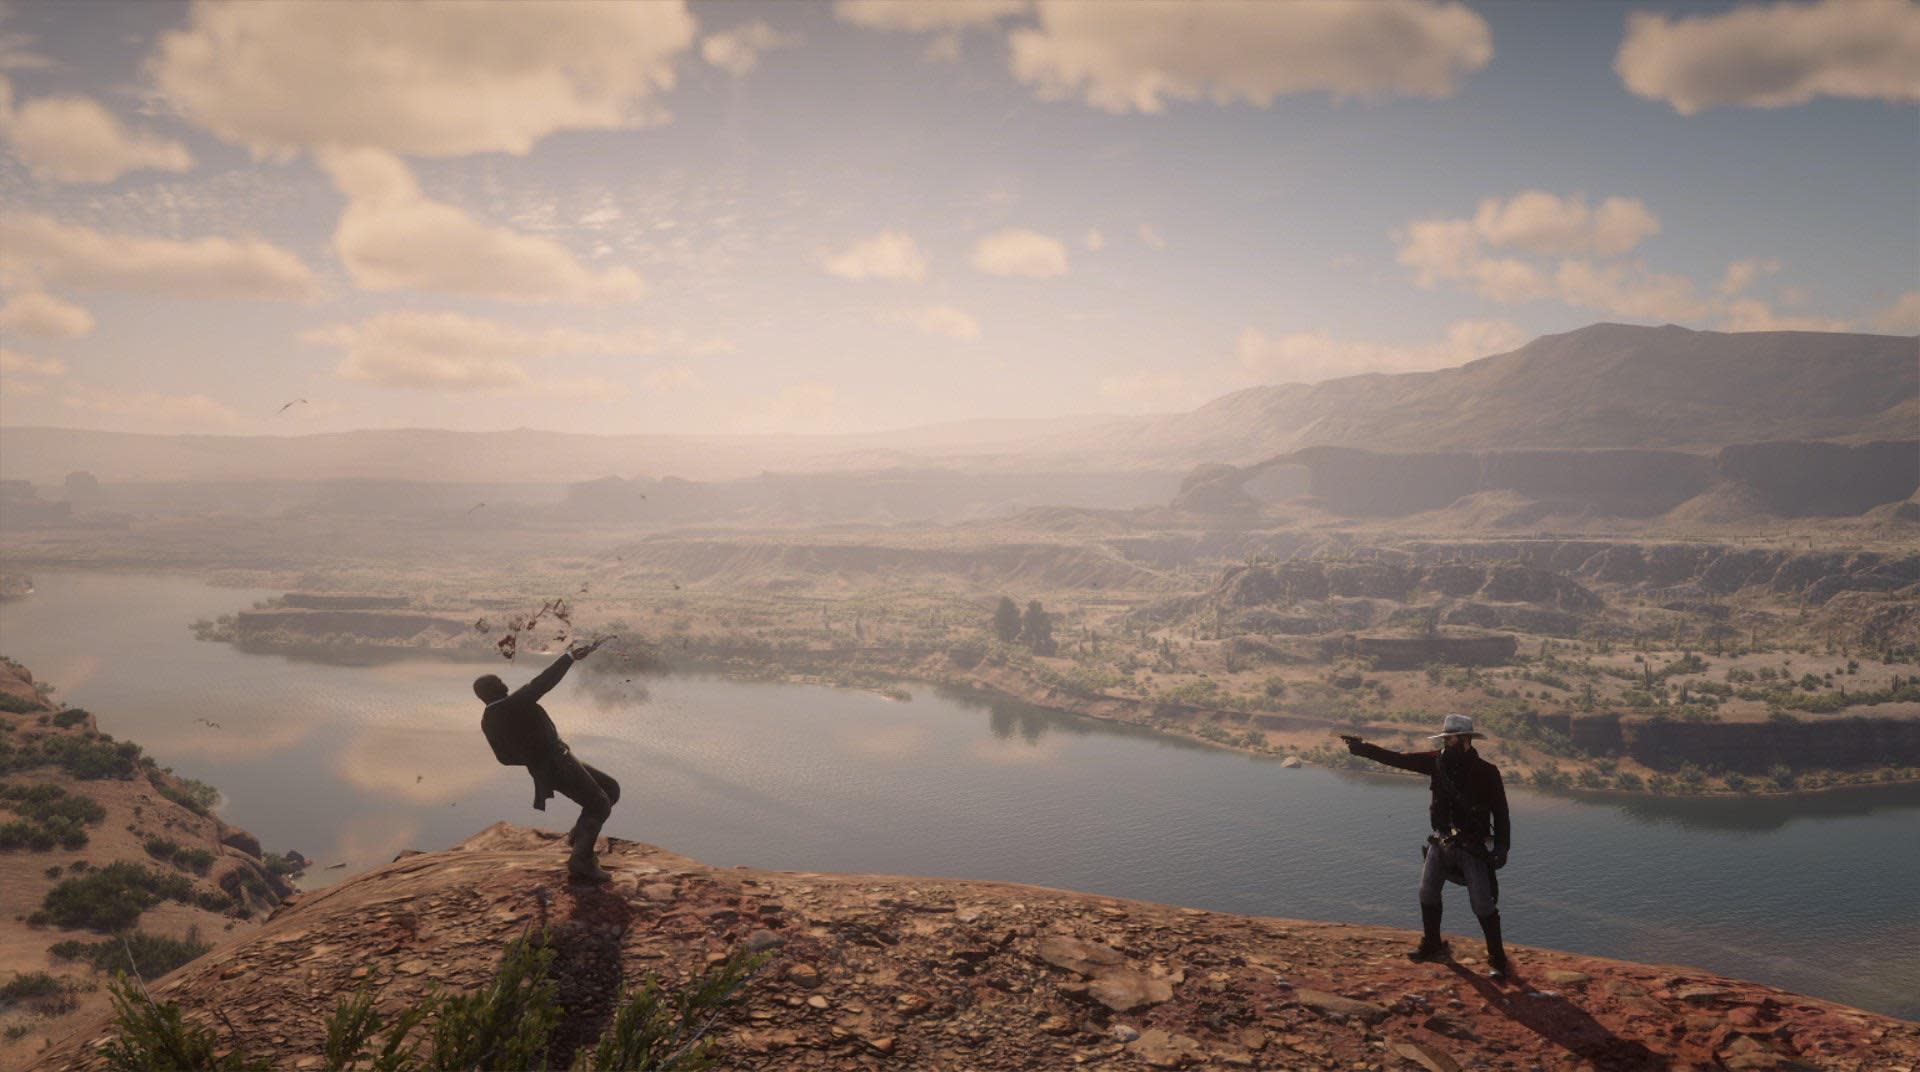 Red Dead Player Kidnaps Sheriffs, Shoots Them In Beautiful Locations